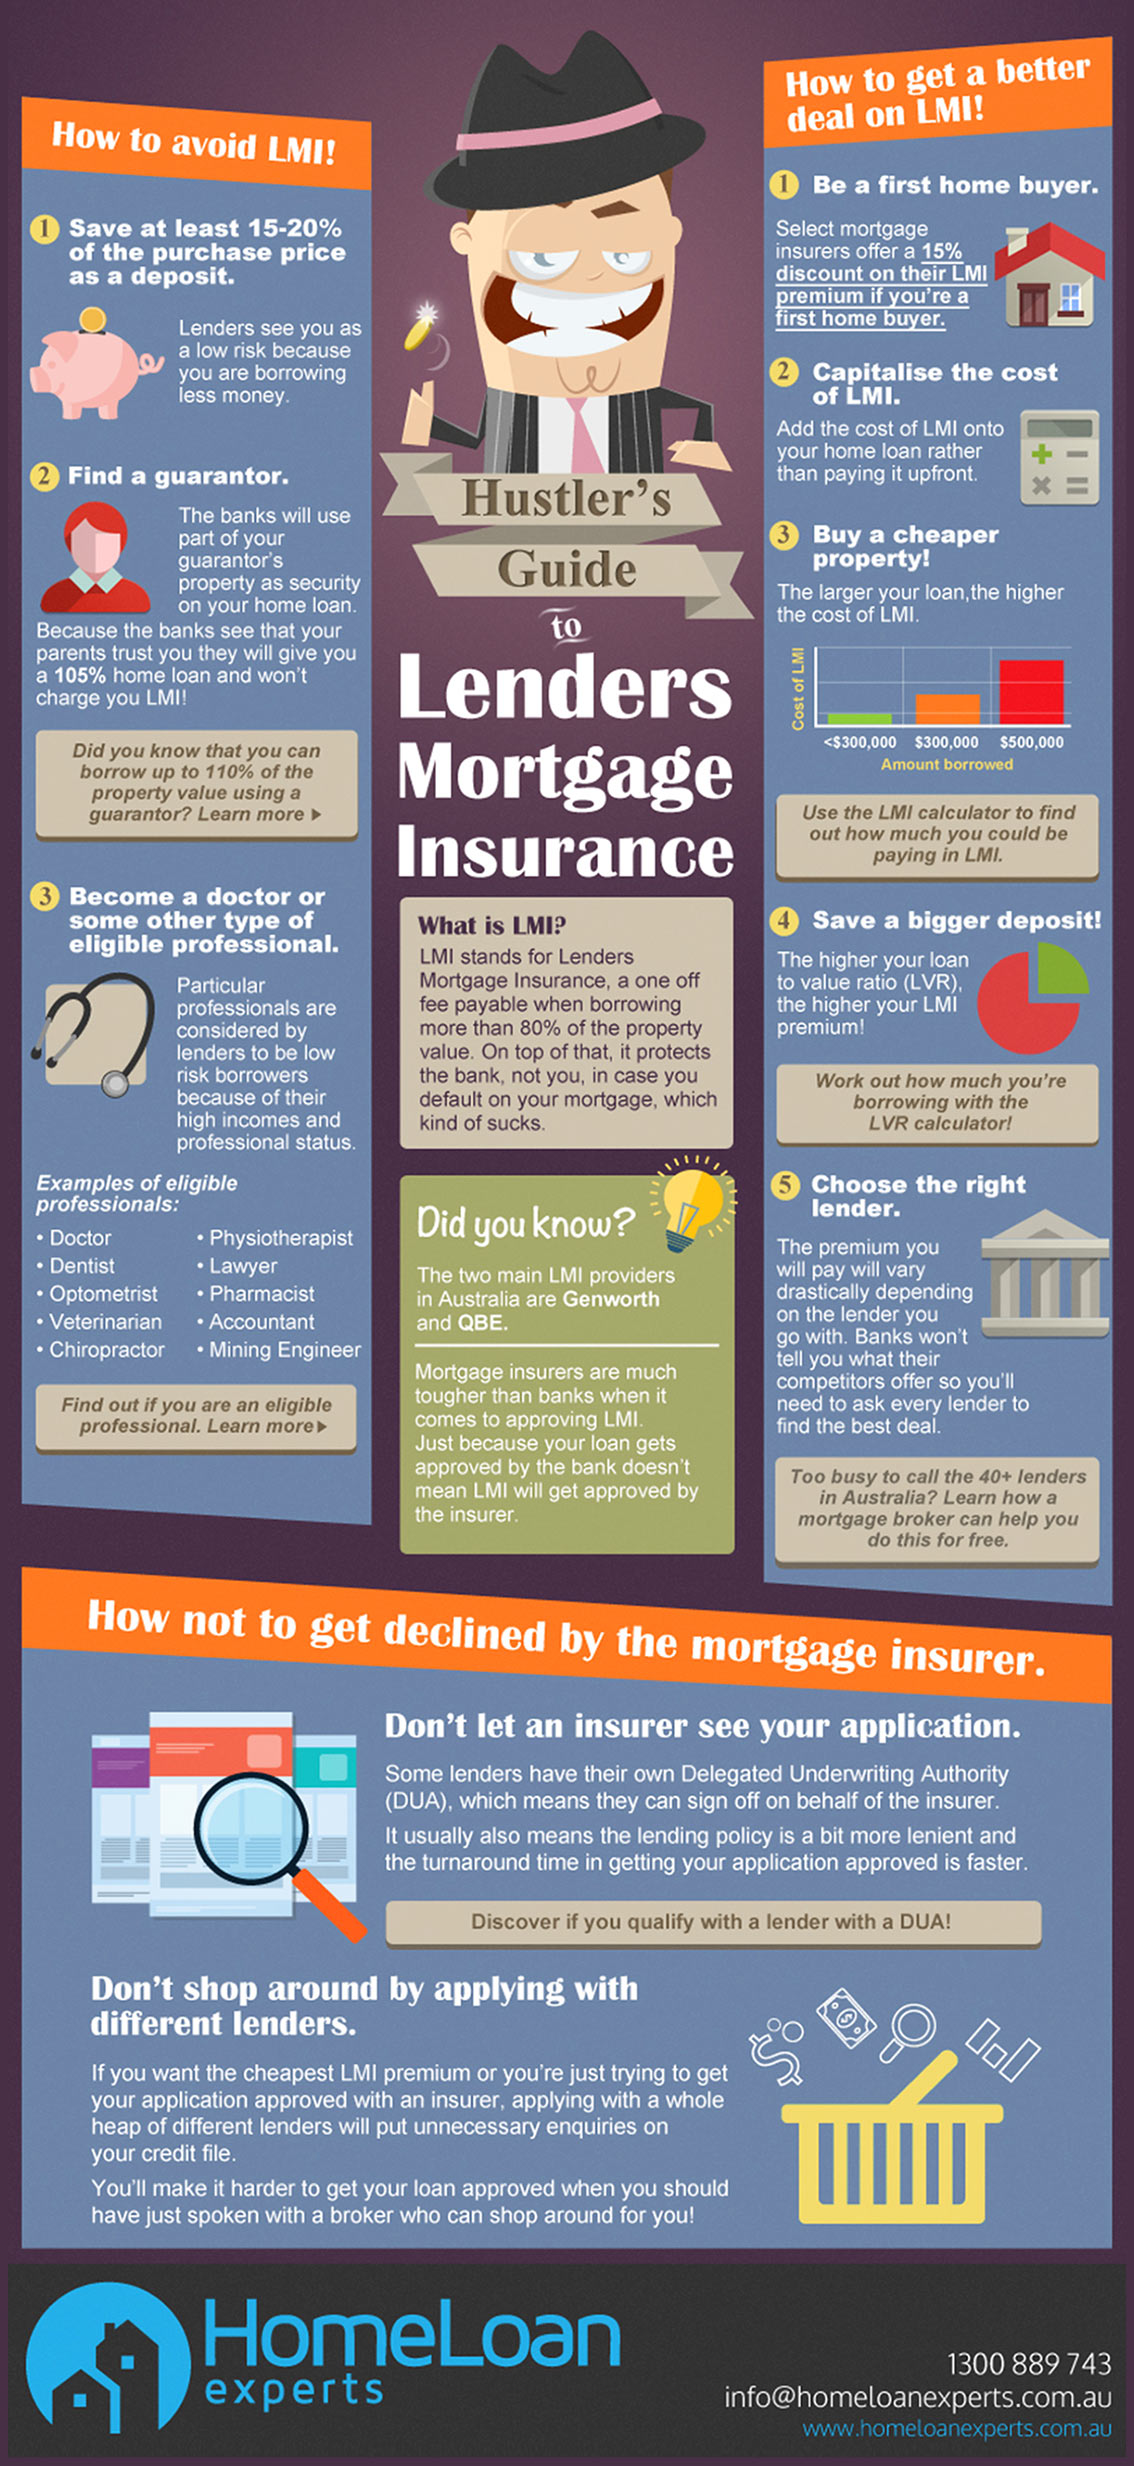 Guide to Lenders Mortgage Insurance Infographic